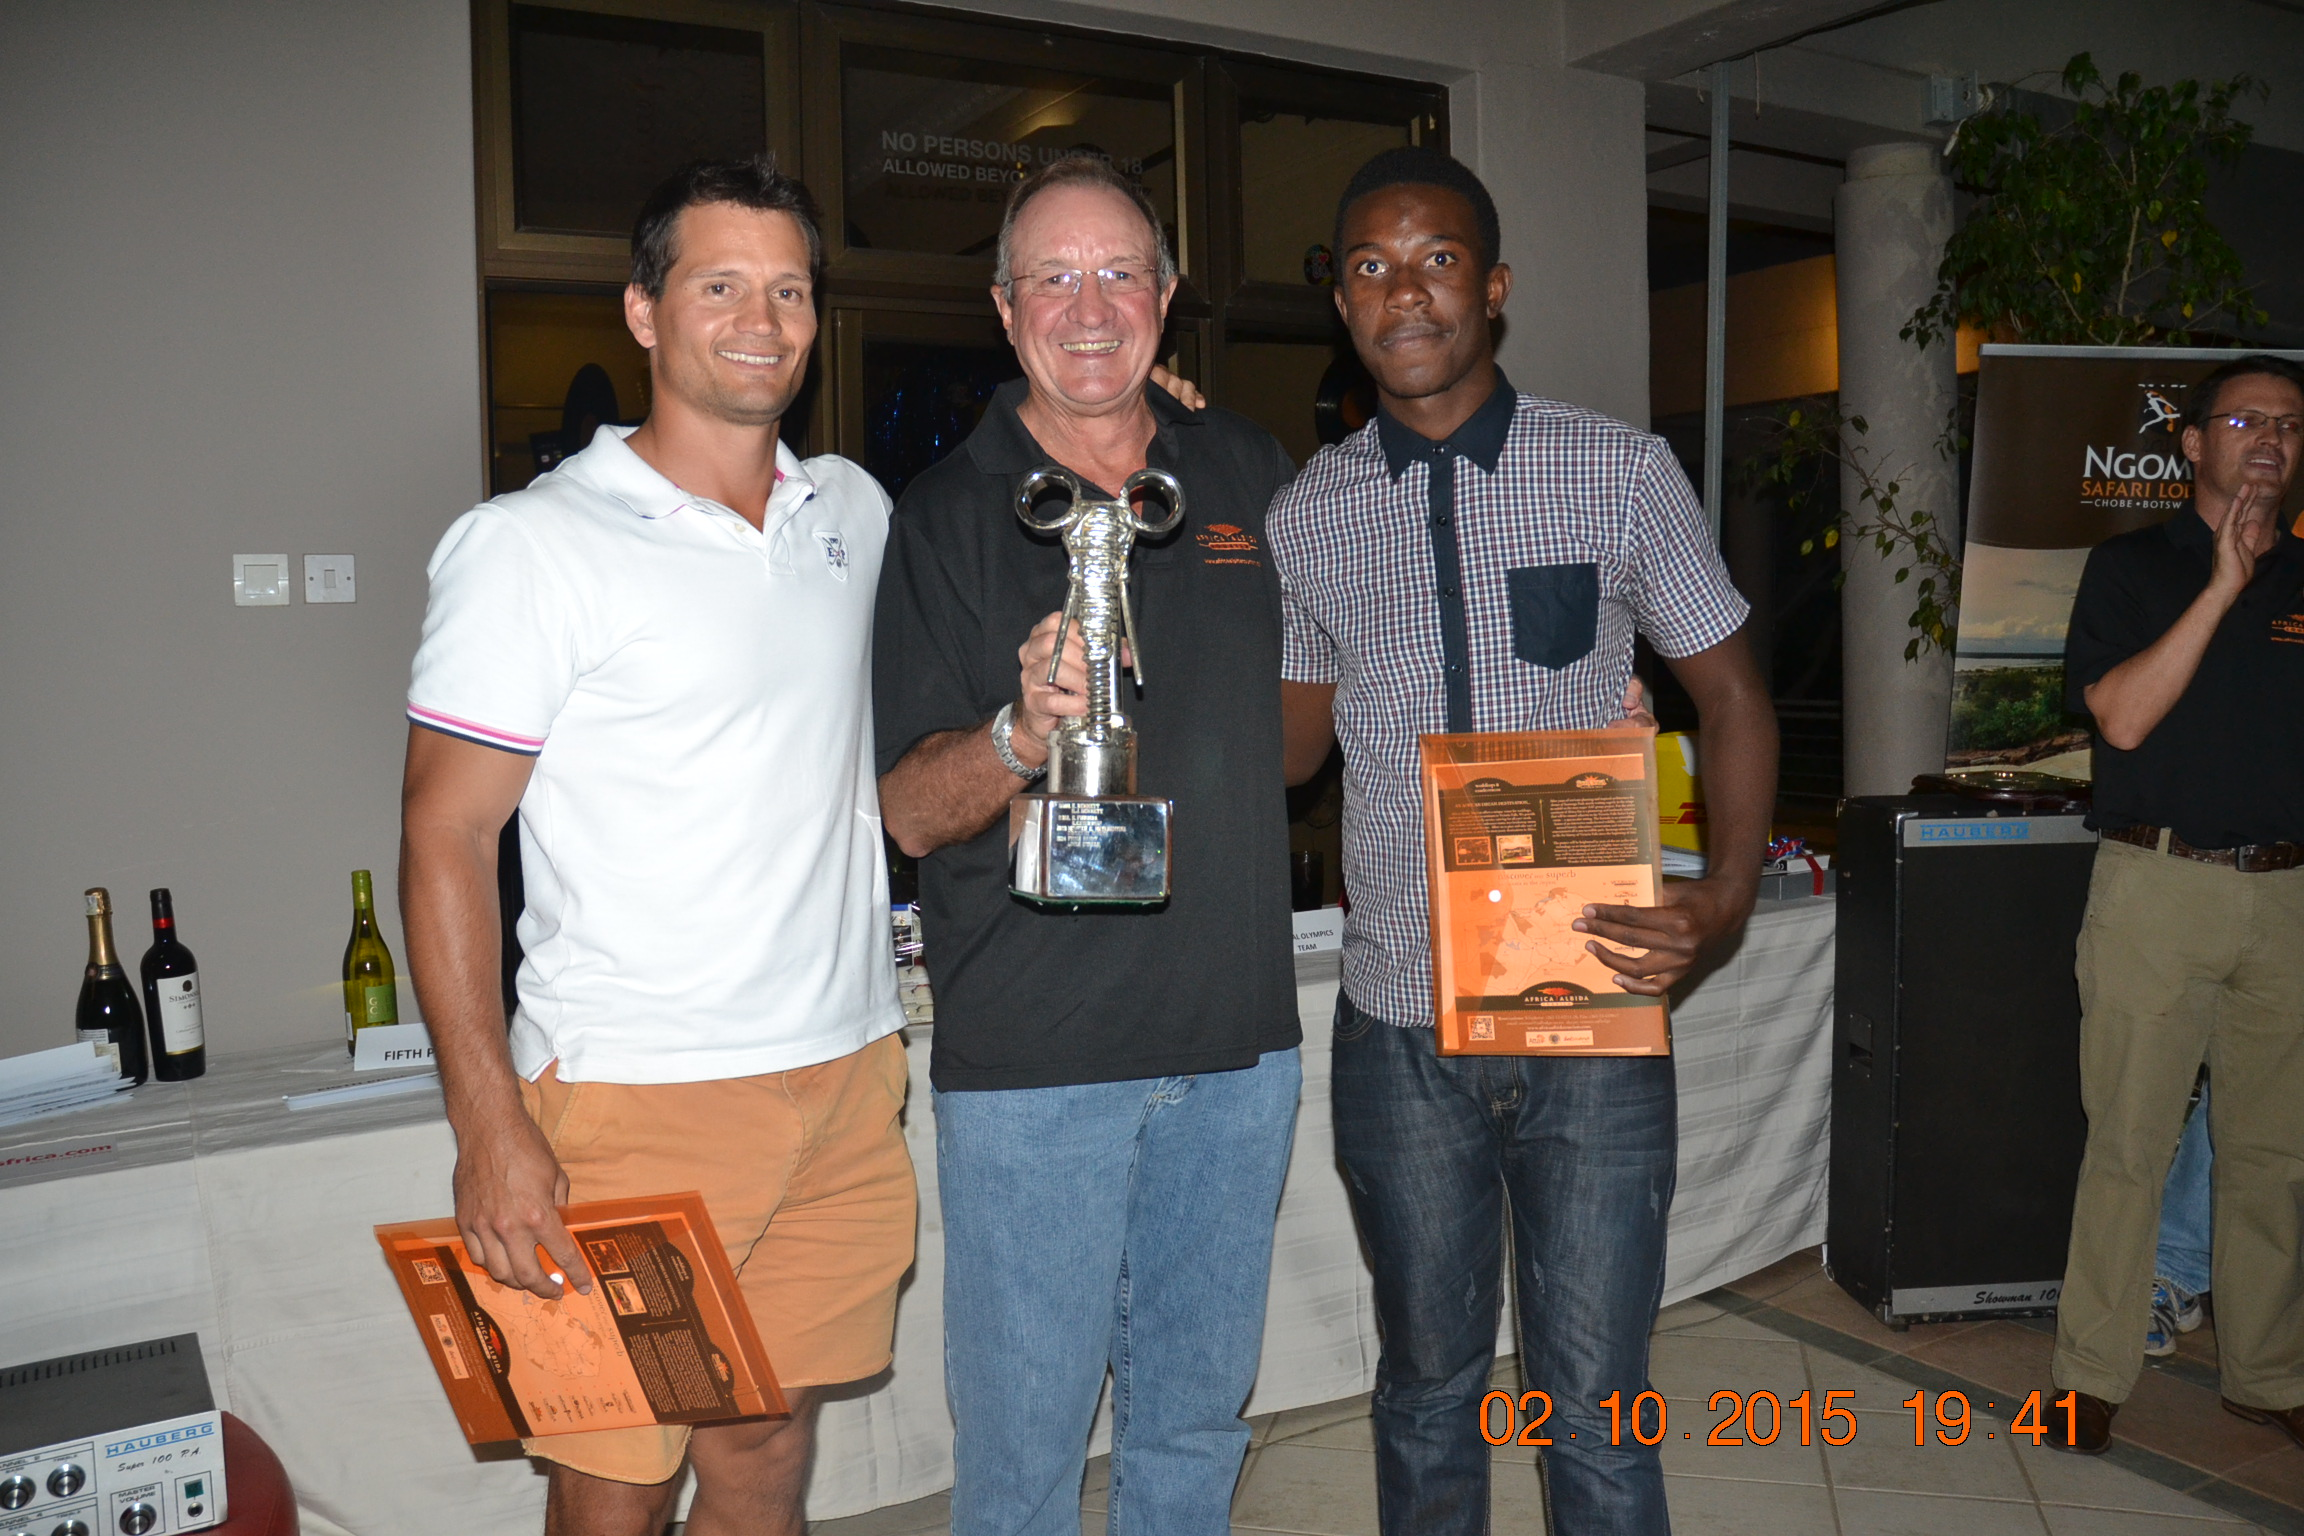 Winners Blair Tabera (Left) and Munya Mudyanadzo (right) being presented with the Trophy by AAT Group Chairman Dave Glynn